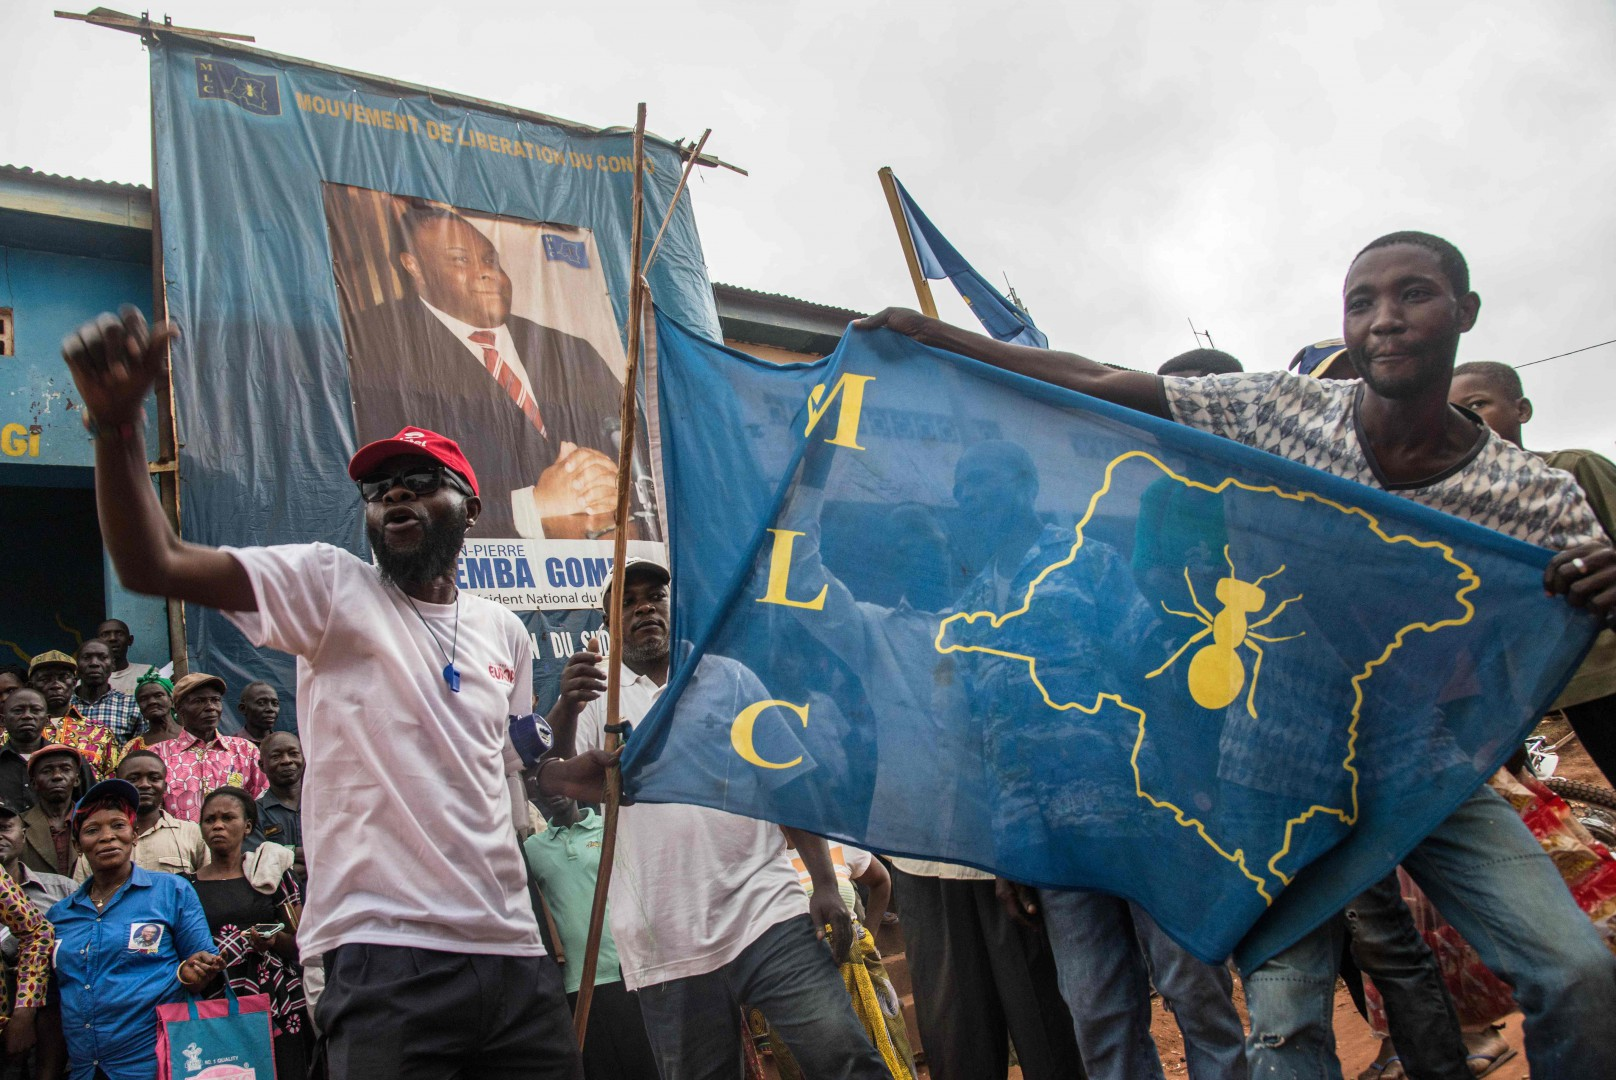 Supporters of former war chief and ex-vice president Jean-Pierre Bemba and his party 'Mouvement de liberation du Congo' (MLC) wait in front of the party's office in Gemena, Democratic Republic of Congo, on July 30, 2018, as he is expected to return to the country after an 11-year absence ahead of December polls. Pierre Bemba, 55, was acquitted in June 2018 of war-crimes charges in The Hague. He has vowed to return to Kinshasa on August 1 to file his election bid. Candidates must physically be in the country to lodge their applications. His party previously said that he would arrive in Gemena, a town in his stronghold of the northwest, on July 31. But on July 30 it said he had not had flight authorisation for landing there. / AFP PHOTO / Junior D. KANNAH